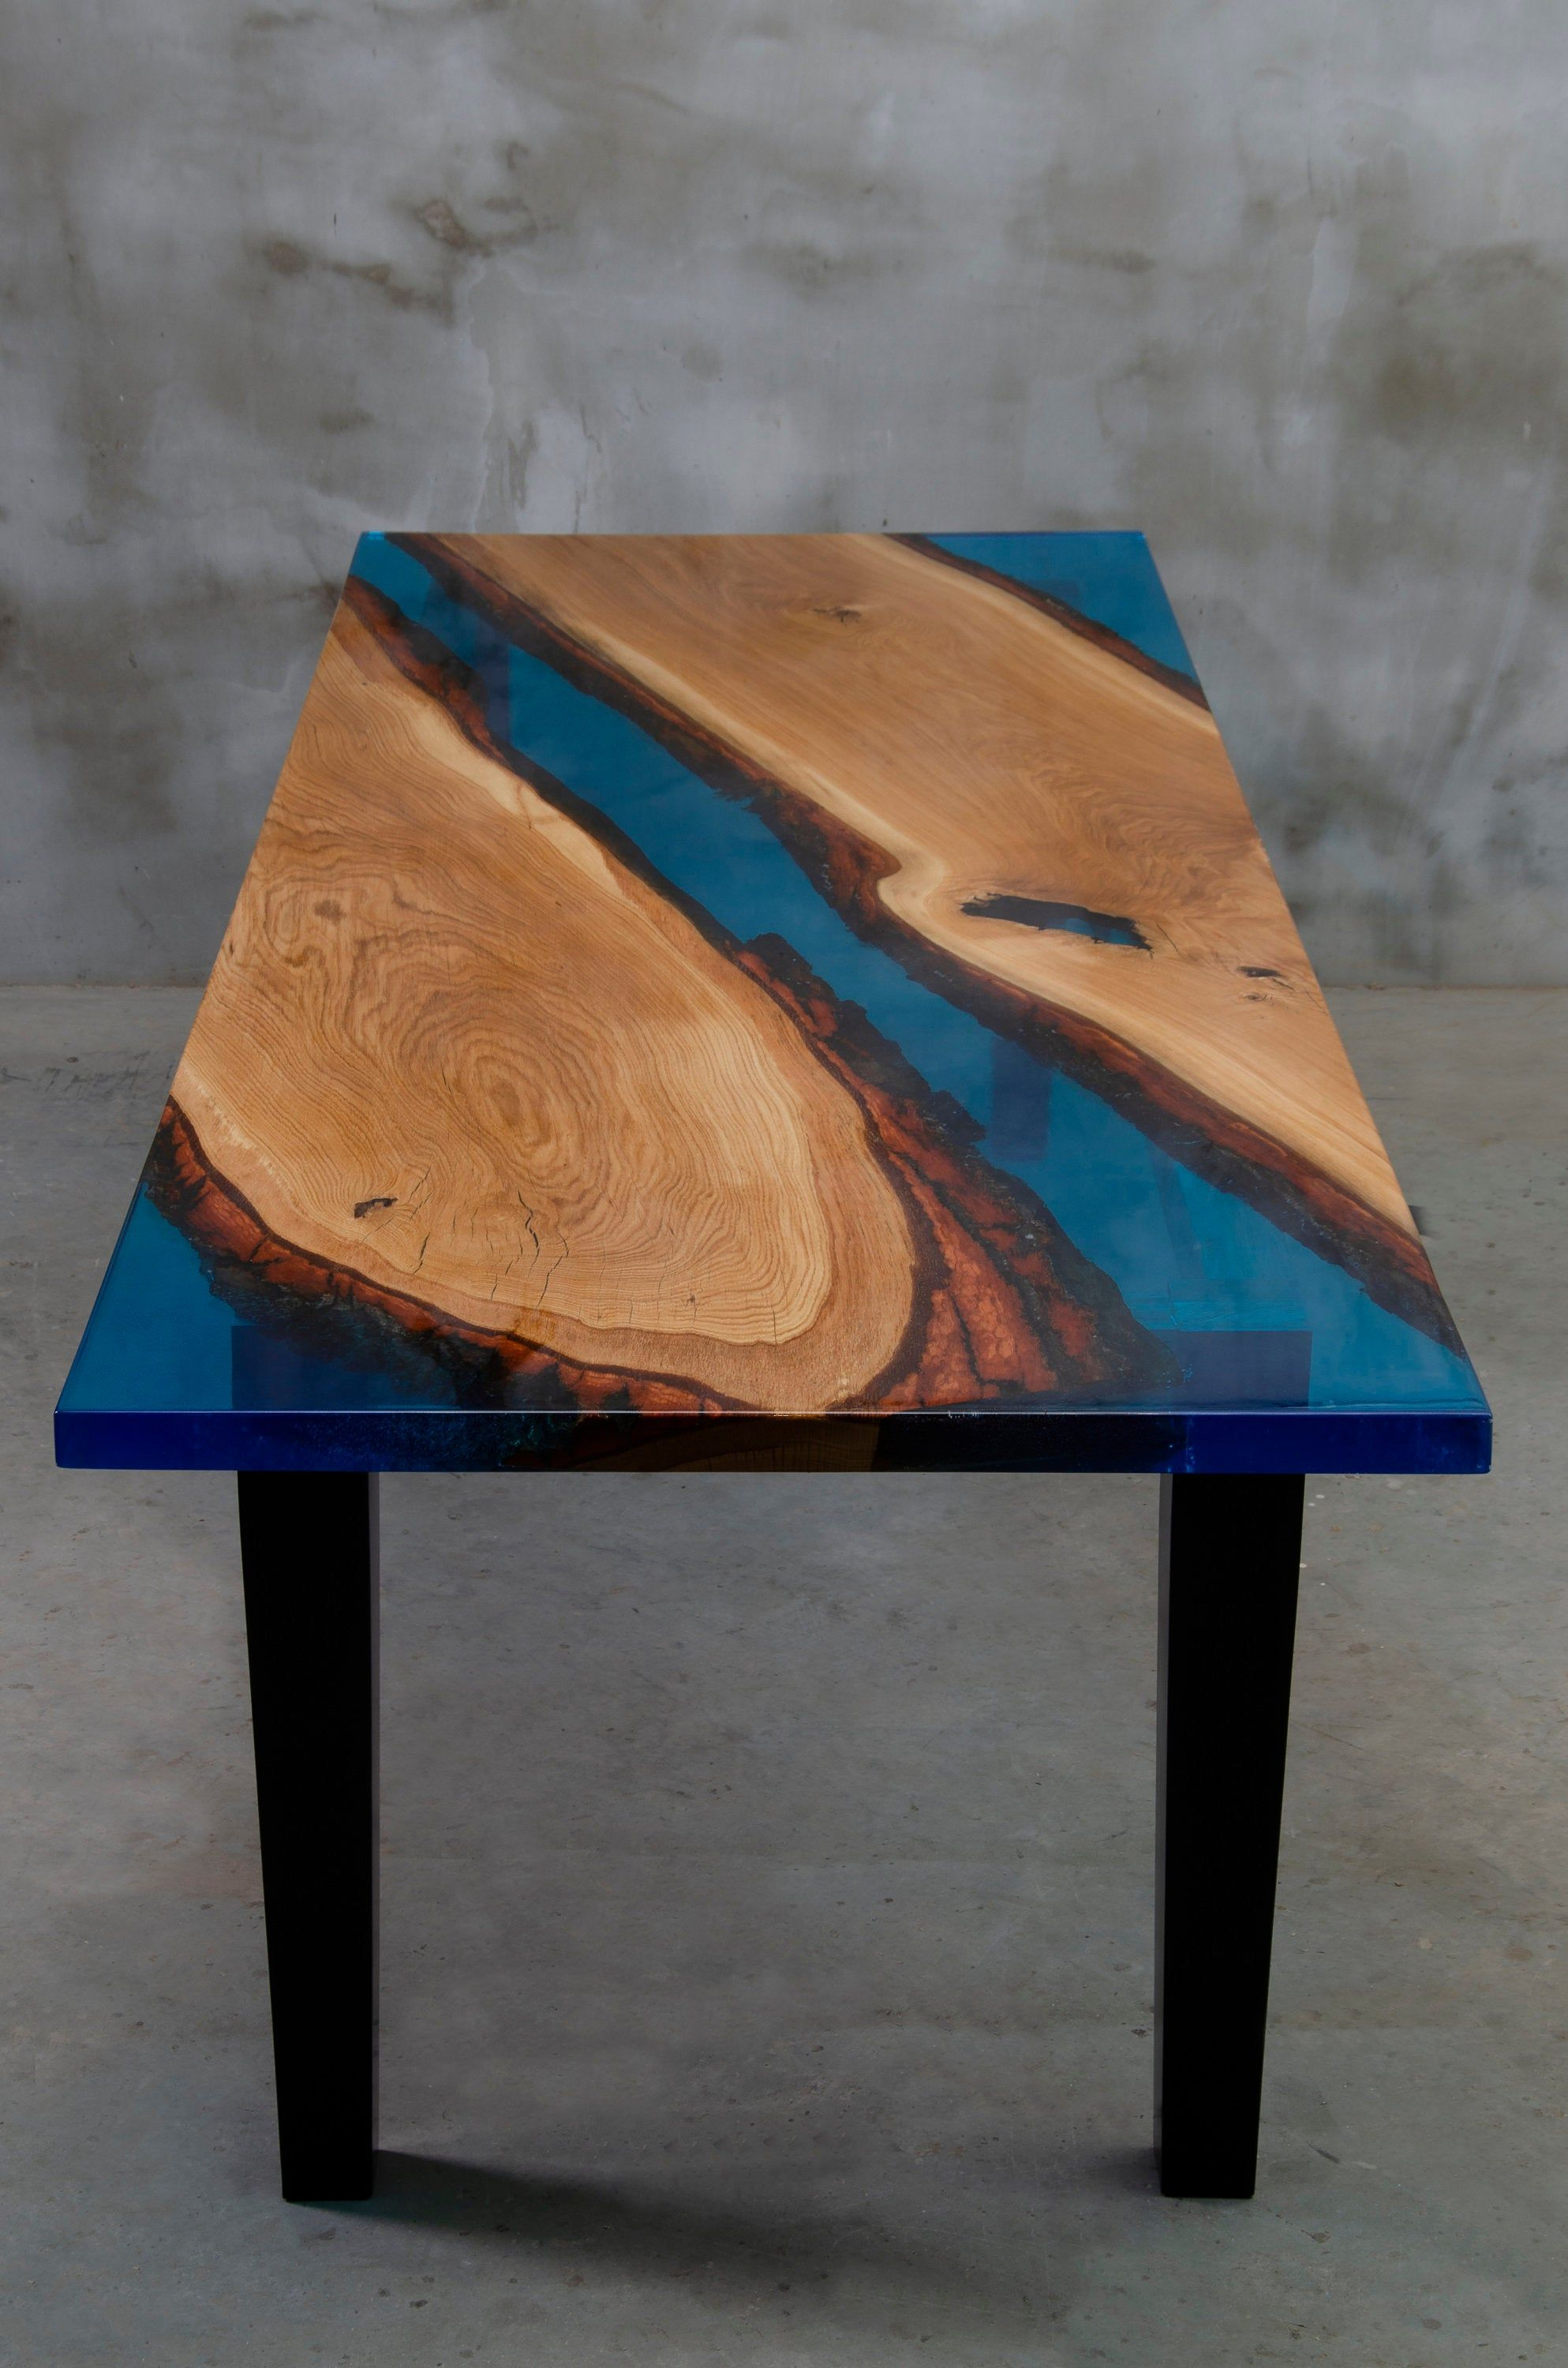 Custom Epoxy Resin Table Made Of Aok Wood Wooden Dining Table With Blue Resin Big Family Epoxy Table Rive Resin Table Epoxy Resin Table Wooden Dining Tables [ 3000 x 1987 Pixel ]